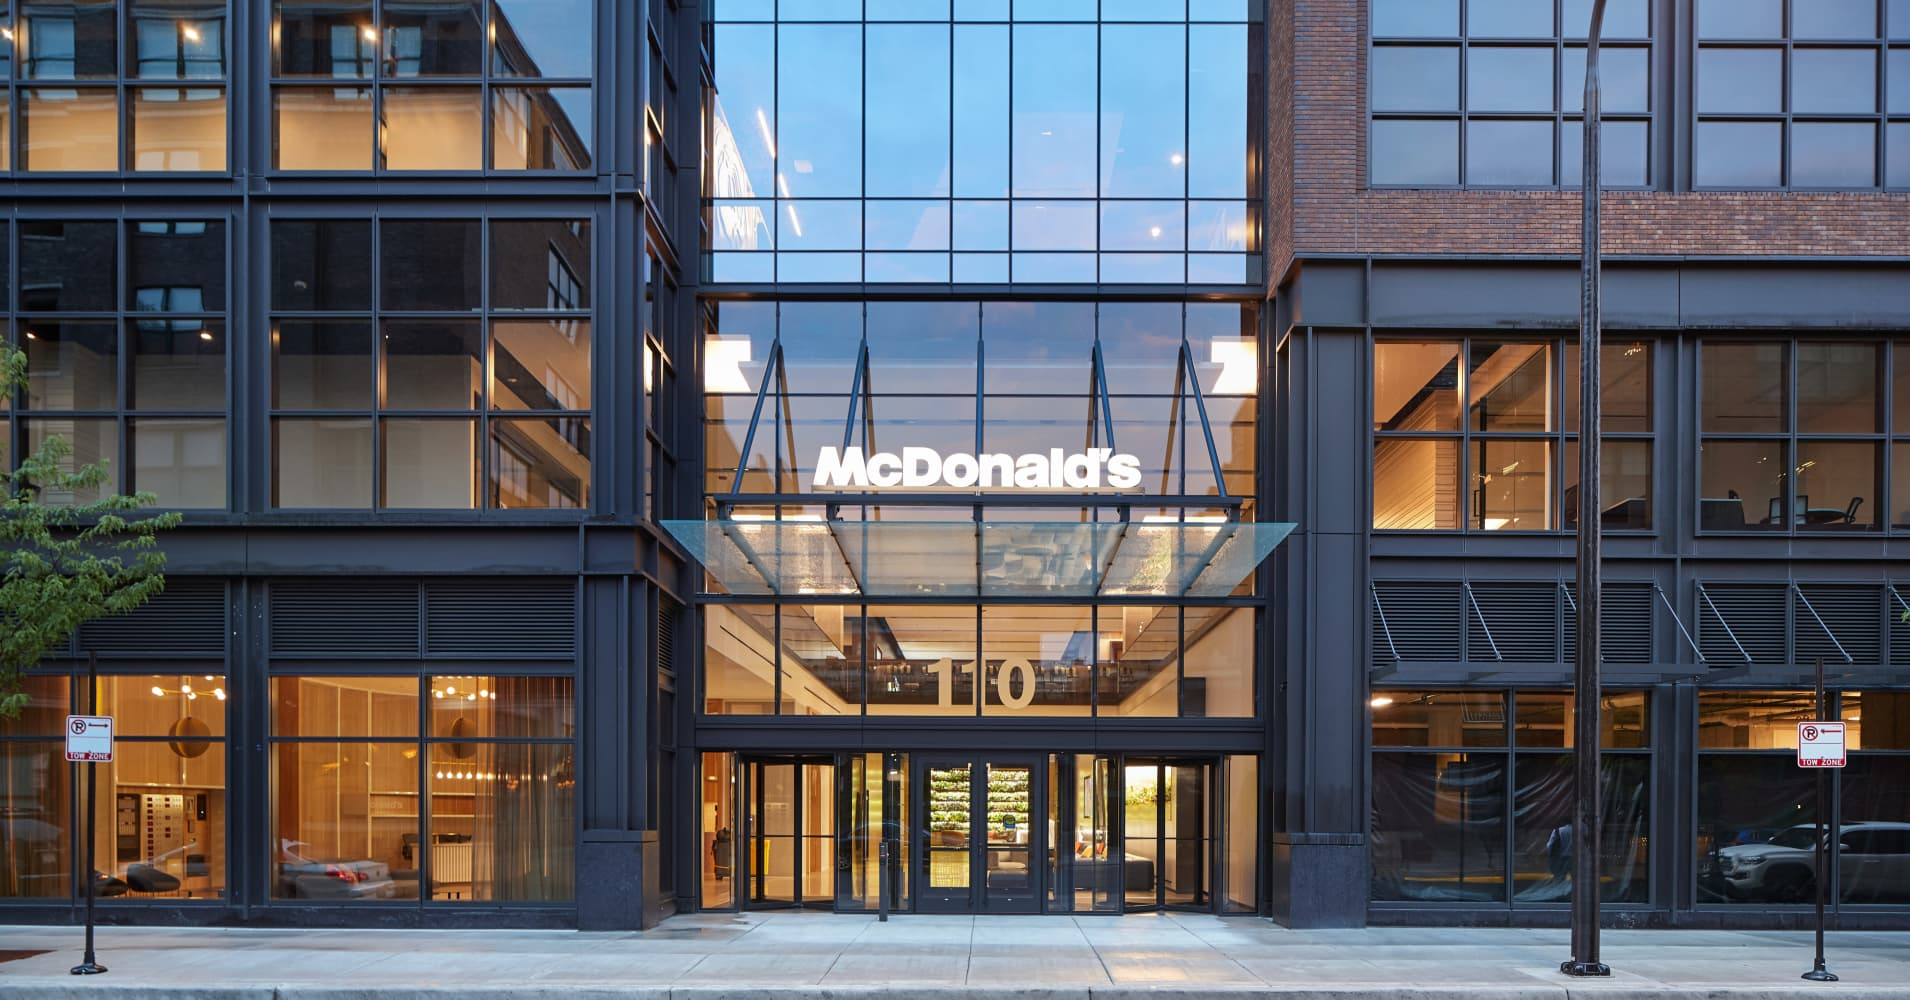 Mcdonald 39 s opens new 250 million headquarters here 39 s what it looks like inside - Mcdonald corporate office ...